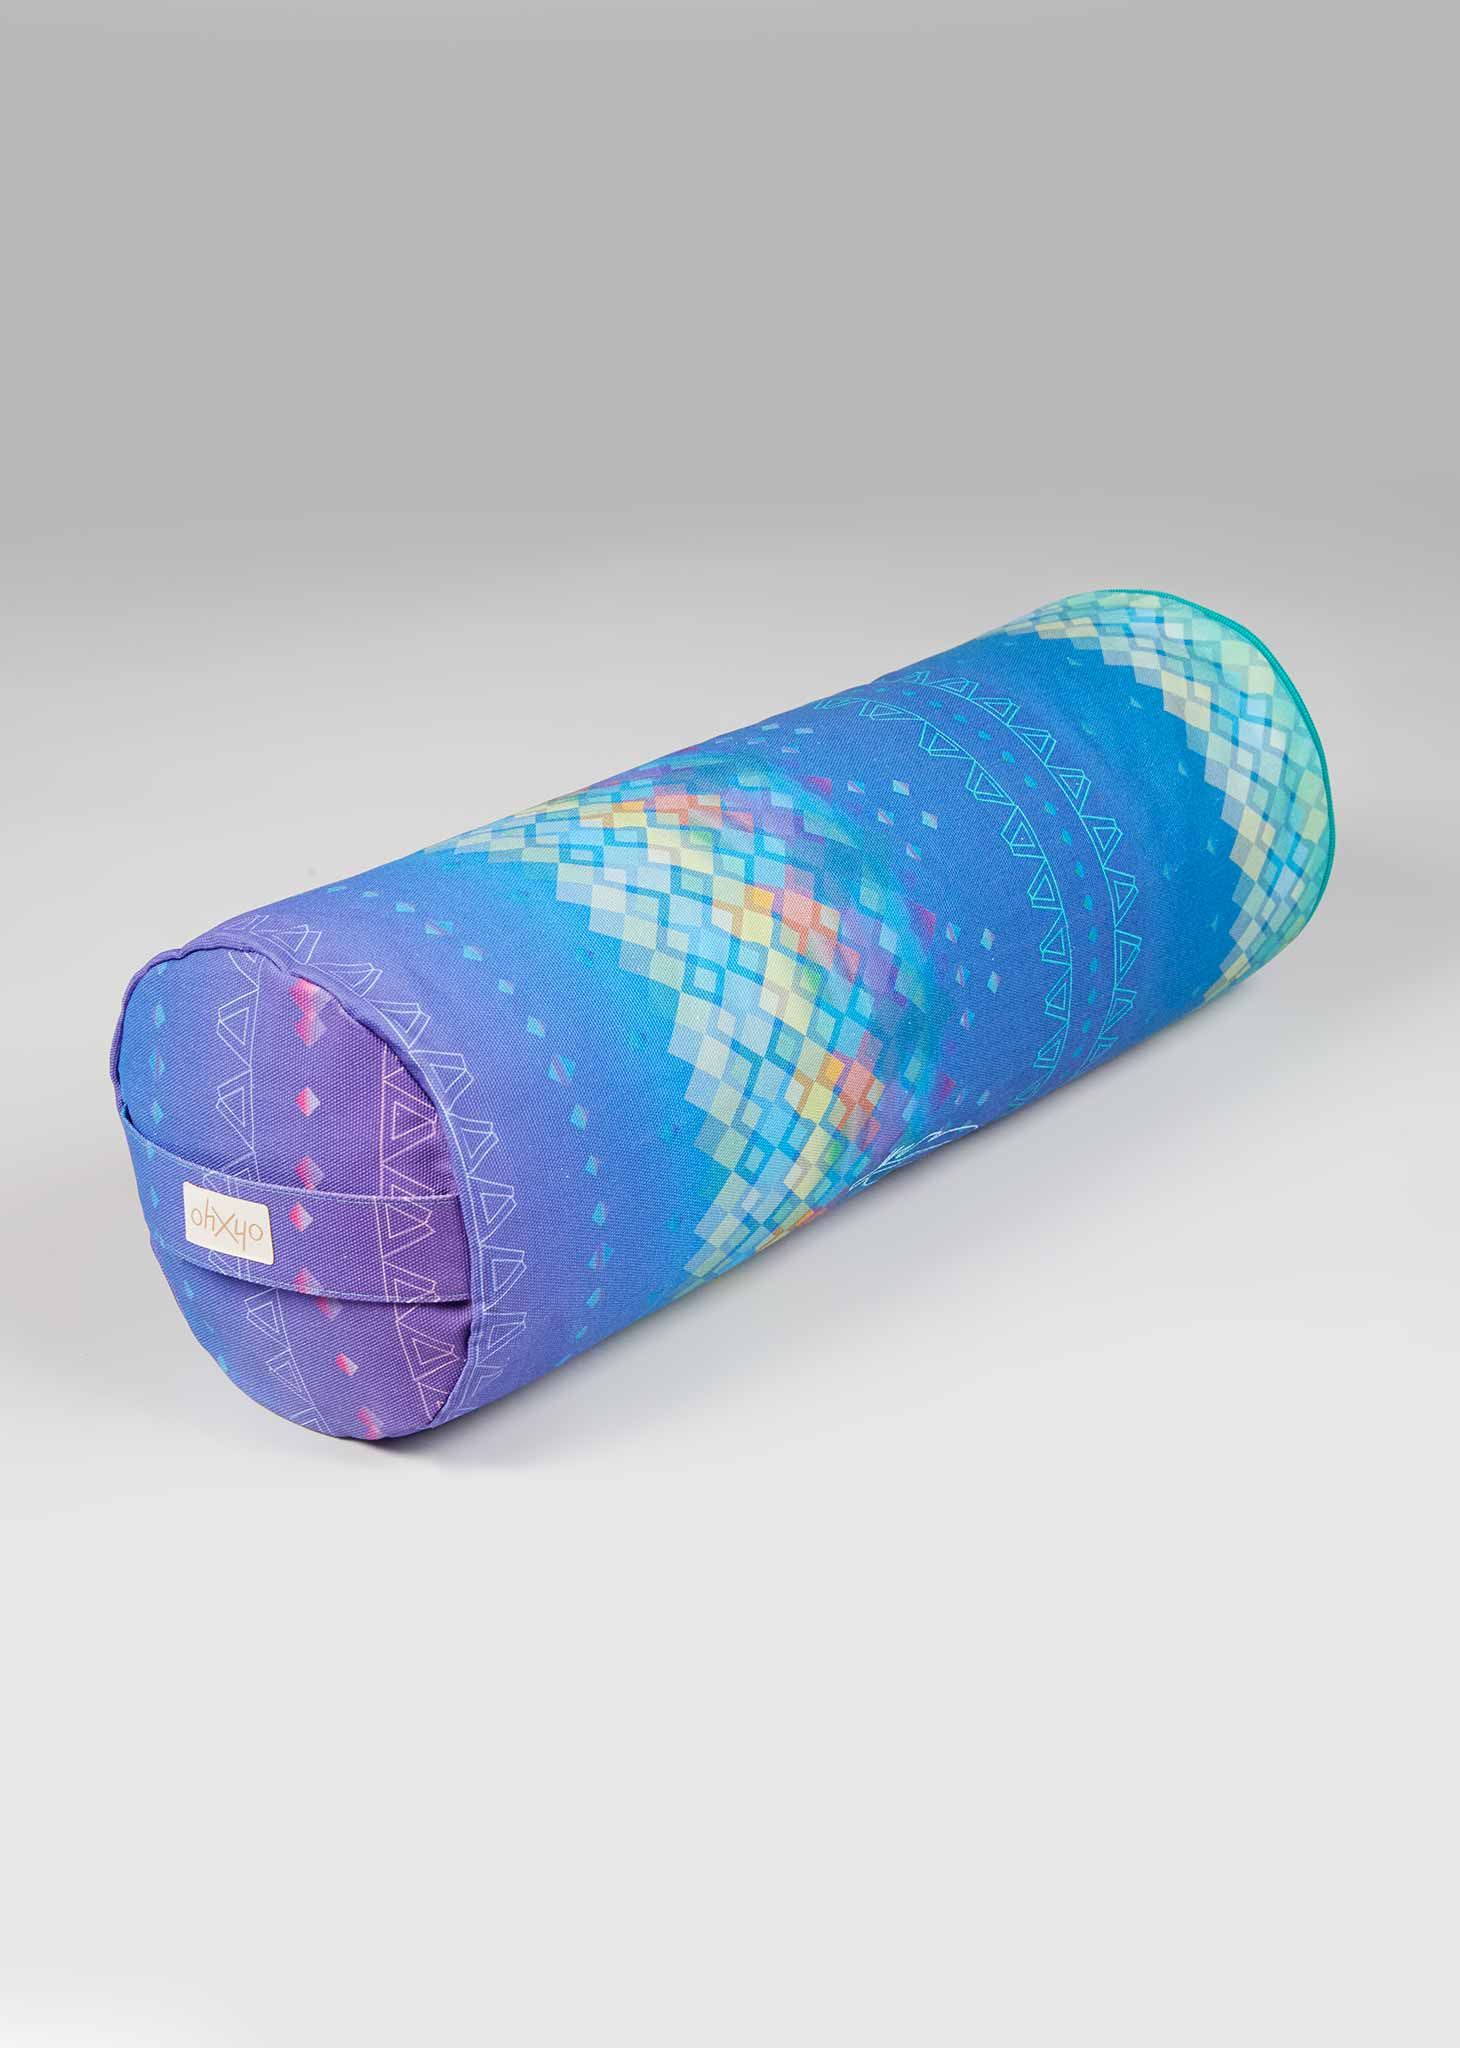 RELAXING Yoga Pillow